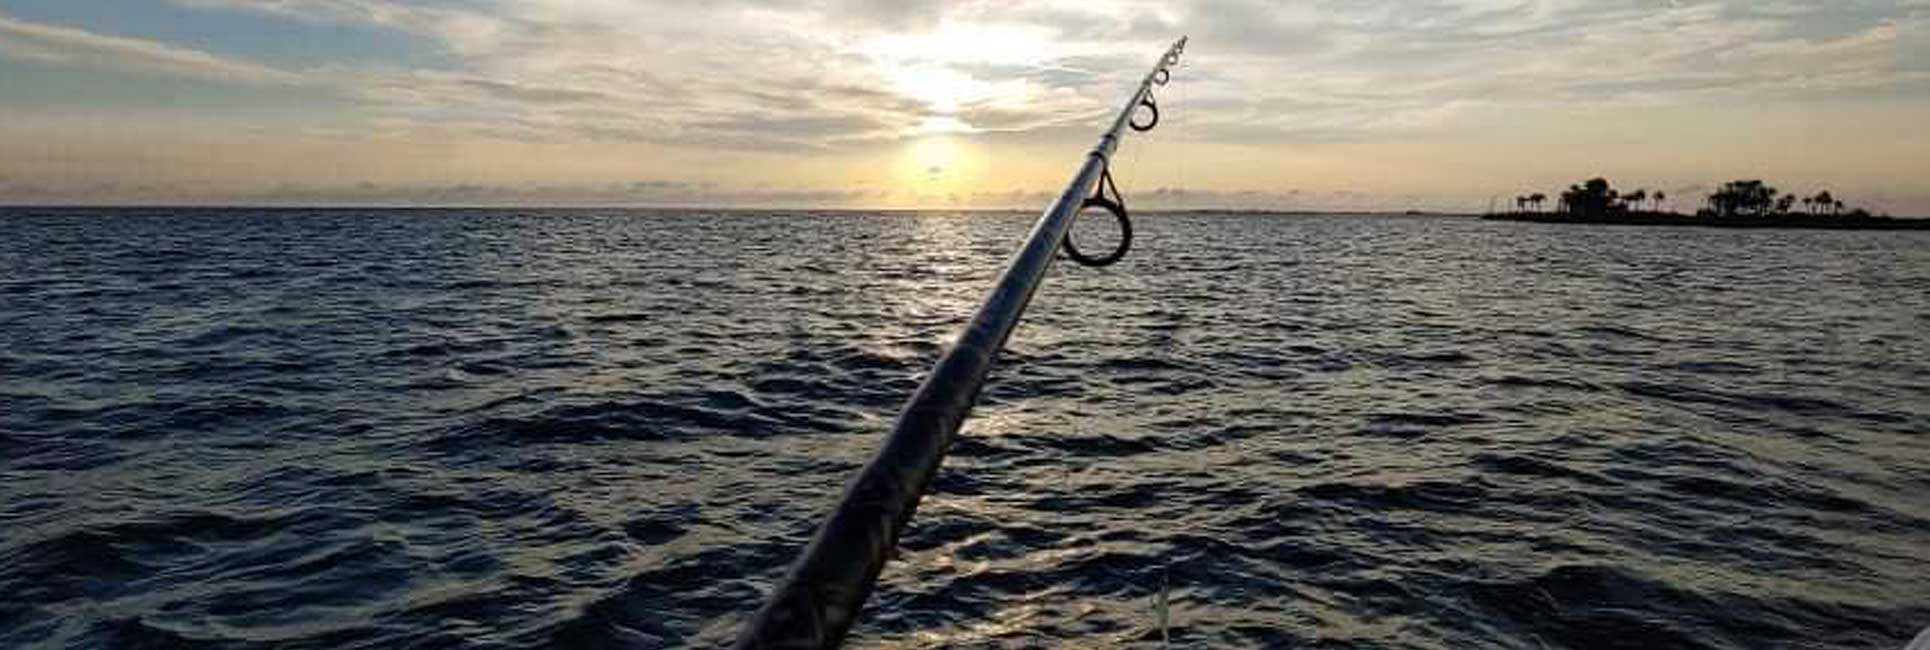 A fishing rod over the water with the sunsetting on Rodman Reservoir, FL.